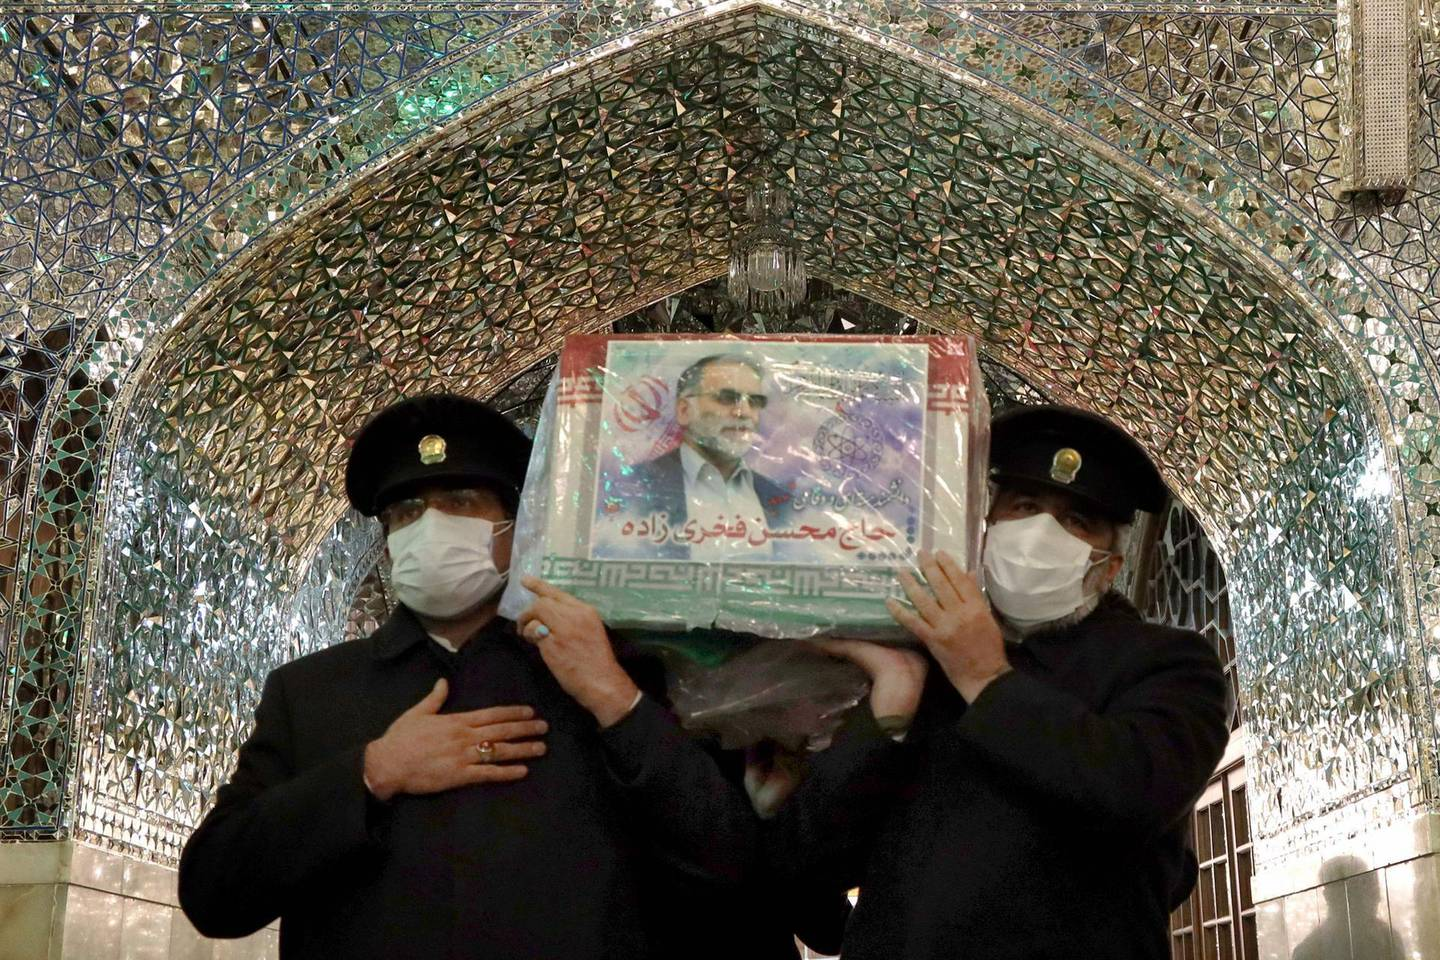 """A handout picture provided by Iran's Defence Ministry on November 29, 2020 shows Servants of the Imam Reza Shrine carrying the coffin of Iran's assassinated top nuclear scientist Mohsen Fakhrizadeh during his funeral procession in the northeastern city of Mashhad. The body of Iran's assassinated top nuclear scientist has been taken to the first of several revered Shiite Muslim shrines ahead of his burial set for November 30, state media reported. The killing of Fakhrizadeh -- whom Israel has dubbed the """"father"""" of Iran's nuclear programme -- has once more heightened tensions between the Islamic republic and its foes. - ==  RESTRICTED TO EDITORIAL USE - MANDATORY CREDIT """"AFP PHOTO / HO /IRANIAN DEFENCE MINISTRY"""" - NO MARKETING NO ADVERTISING CAMPAIGNS - DISTRIBUTED AS A SERVICE TO CLIENTS ==  / AFP / IRANIAN DEFENCE MINISTRY / - / ==  RESTRICTED TO EDITORIAL USE - MANDATORY CREDIT """"AFP PHOTO / HO /IRANIAN DEFENCE MINISTRY"""" - NO MARKETING NO ADVERTISING CAMPAIGNS - DISTRIBUTED AS A SERVICE TO CLIENTS =="""